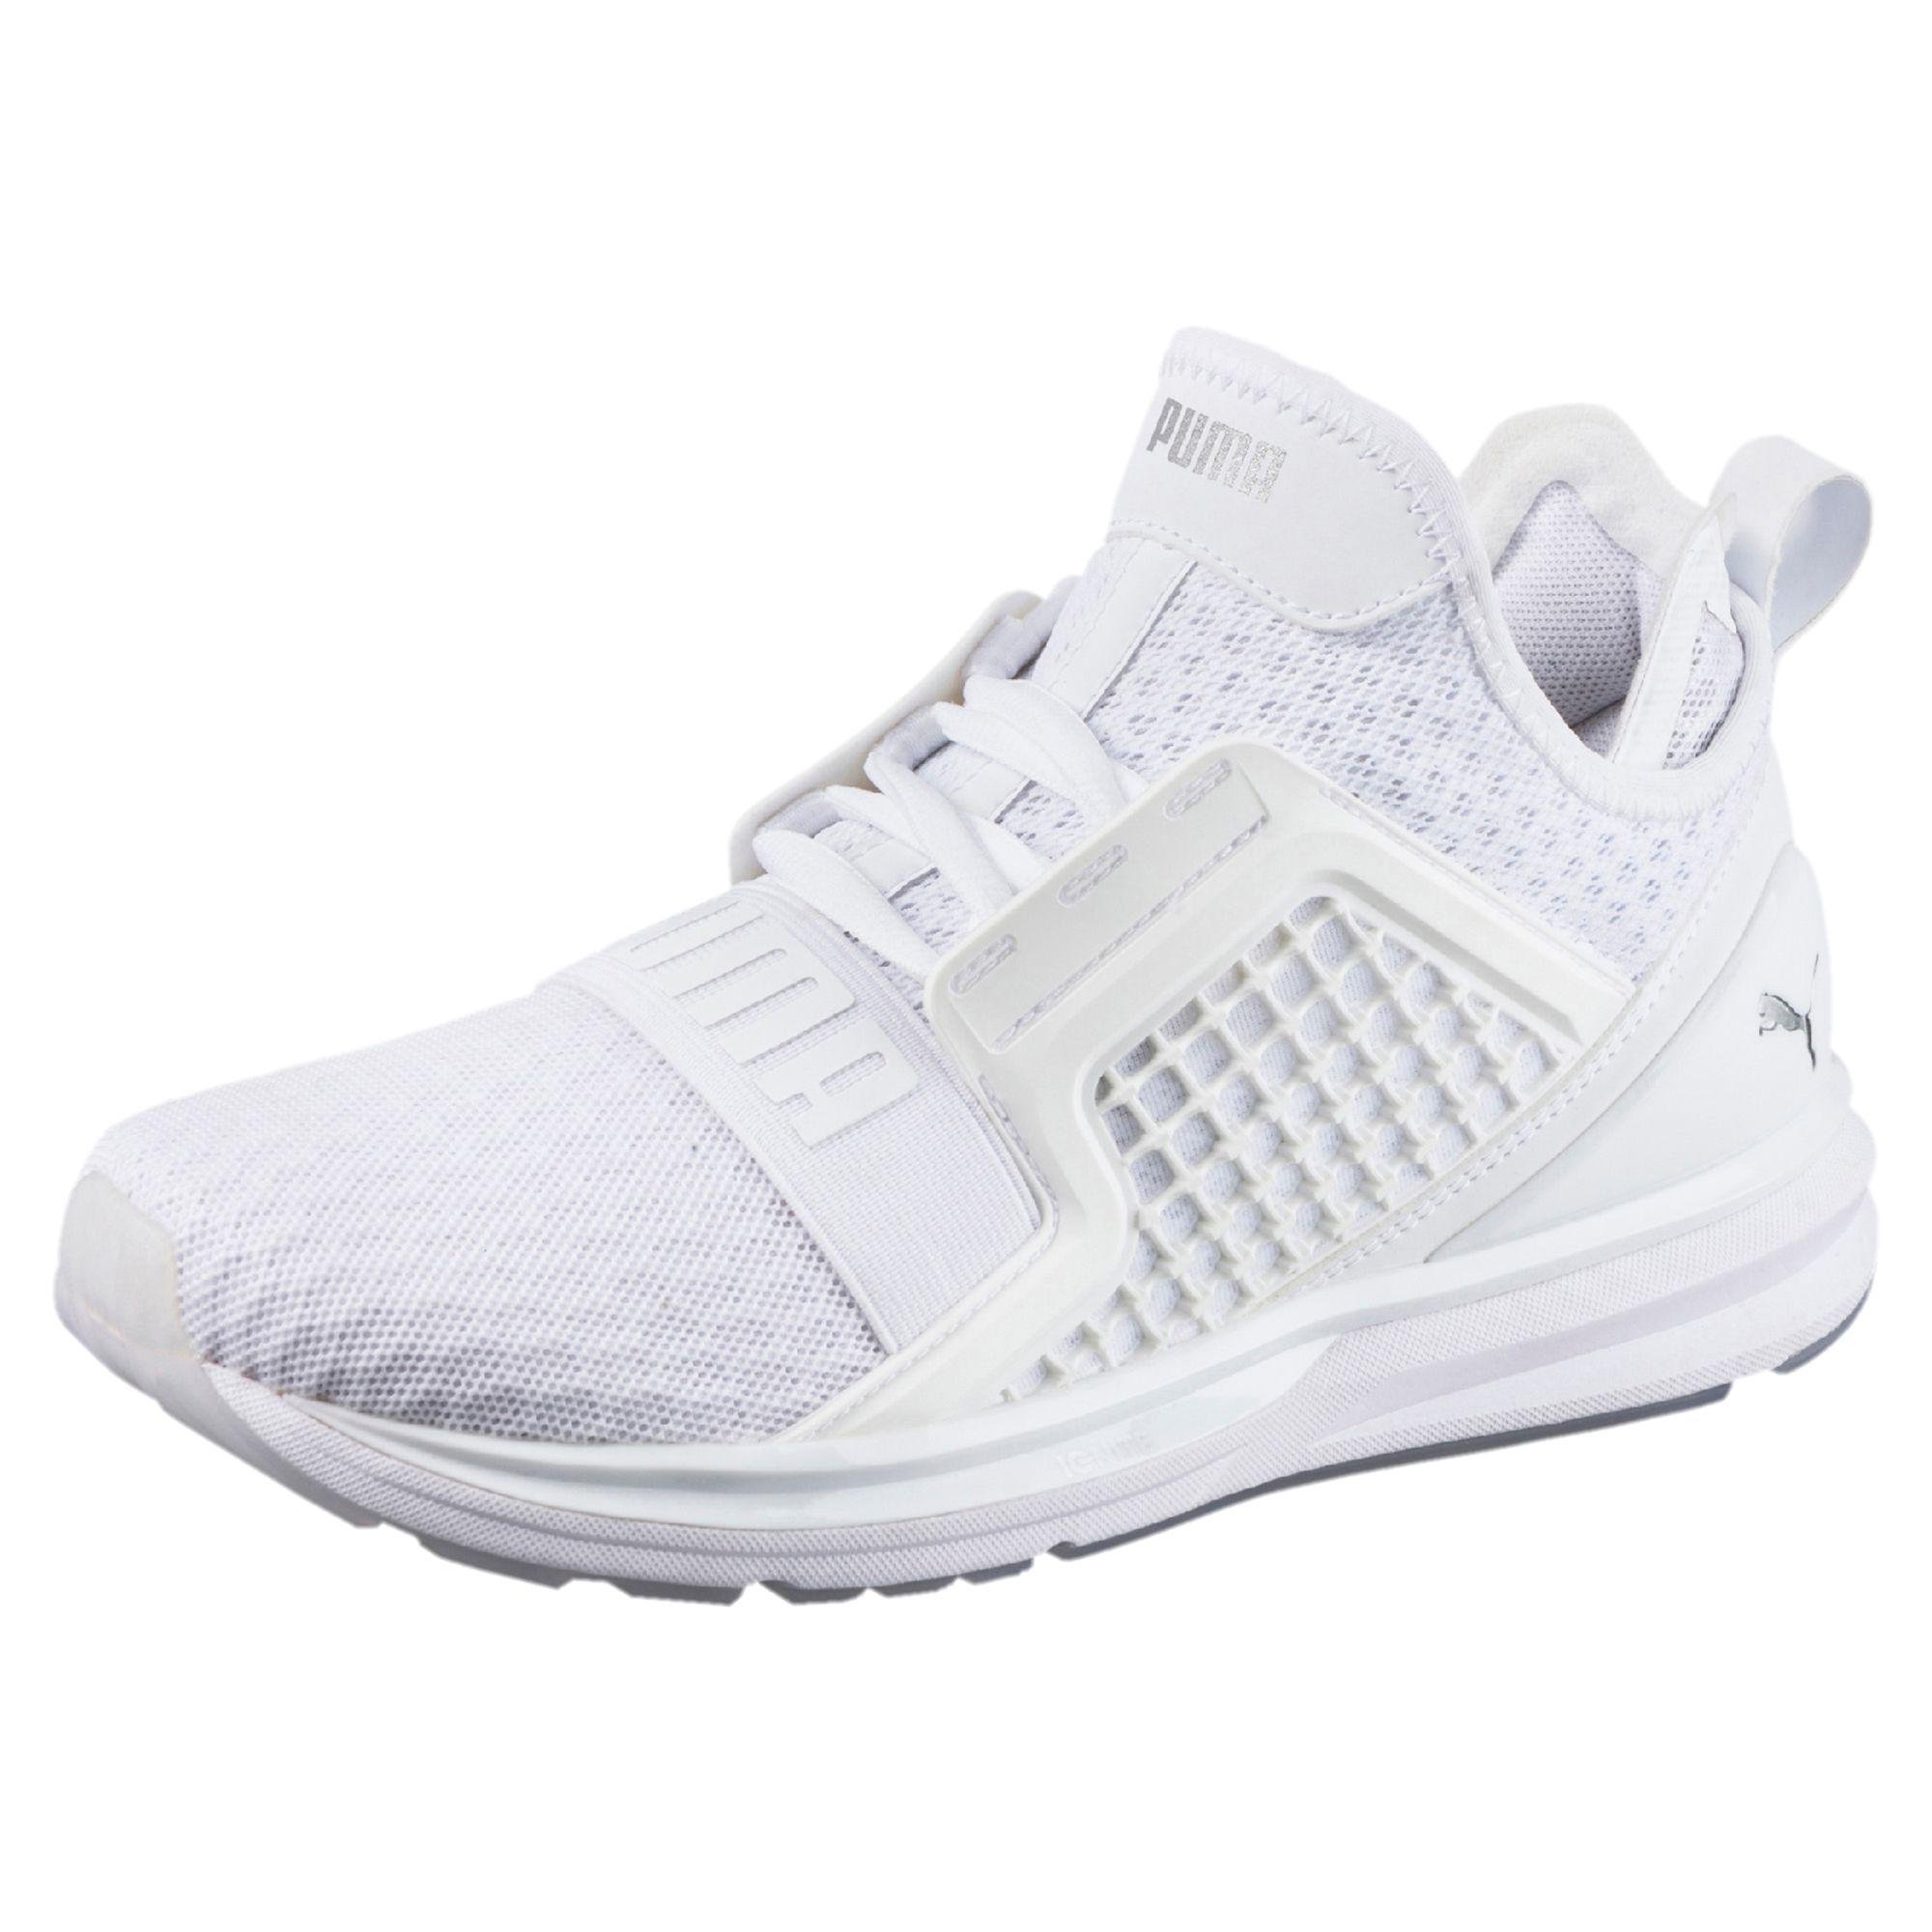 newest 54af2 1d4f9 PUMA White Ignite Limitless Women's Training Shoes